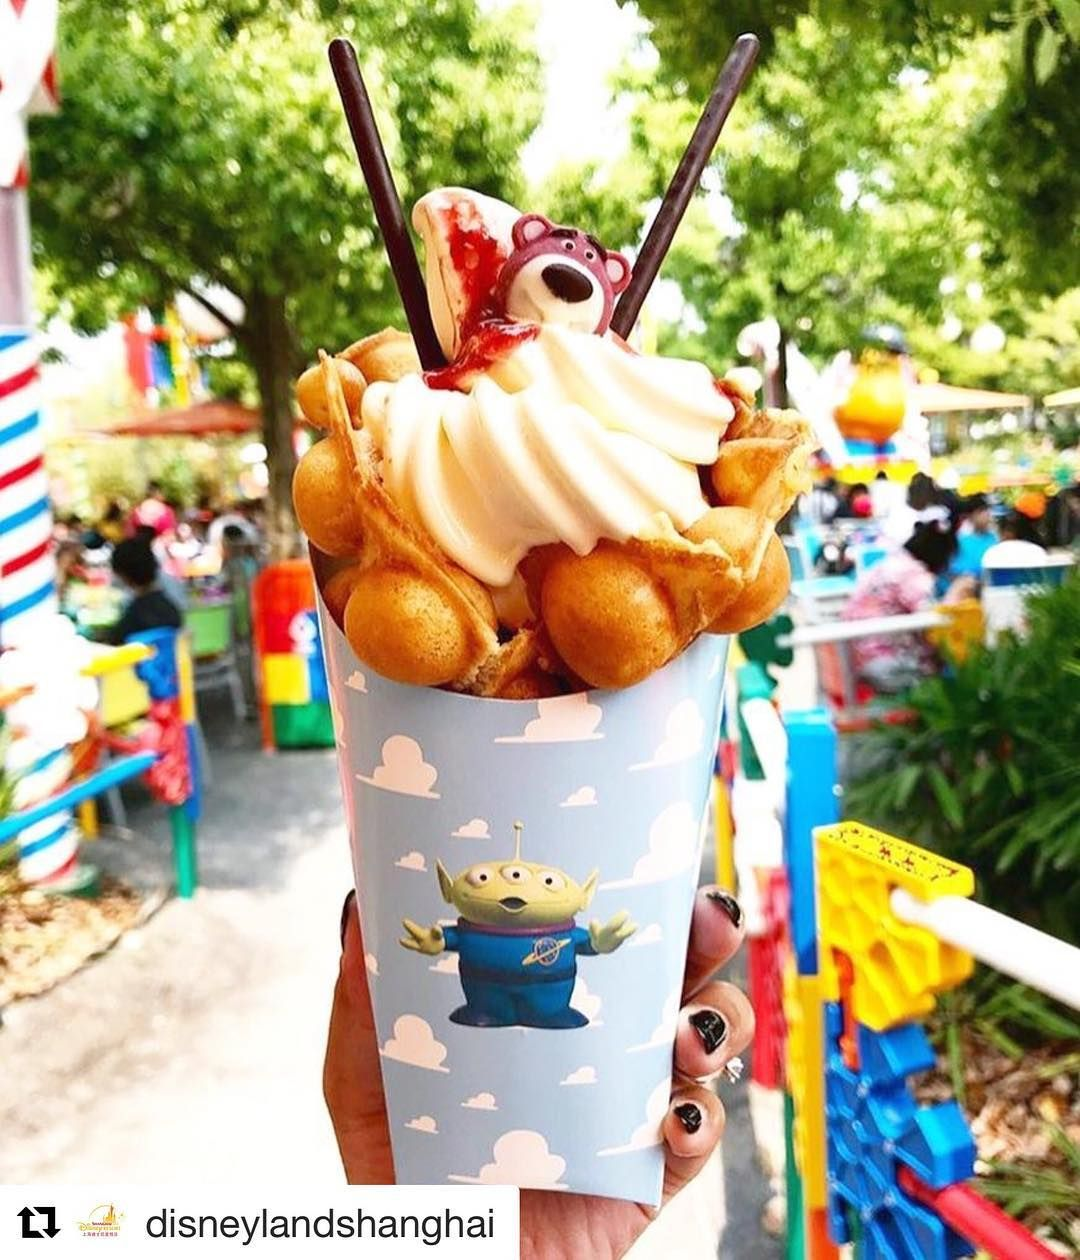 Disney Treats and Eats You Must Try #disneylandfood